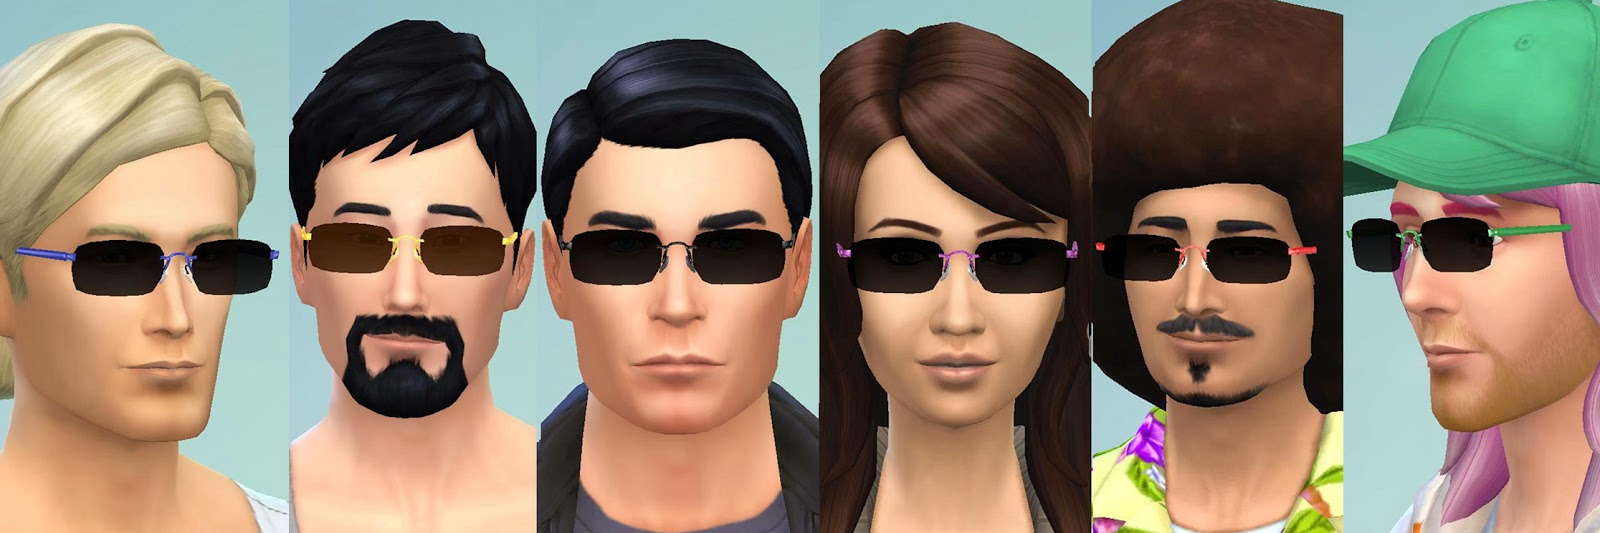 Frameless Rectangular Sunglasses (TS4 Version) by Esmeralda